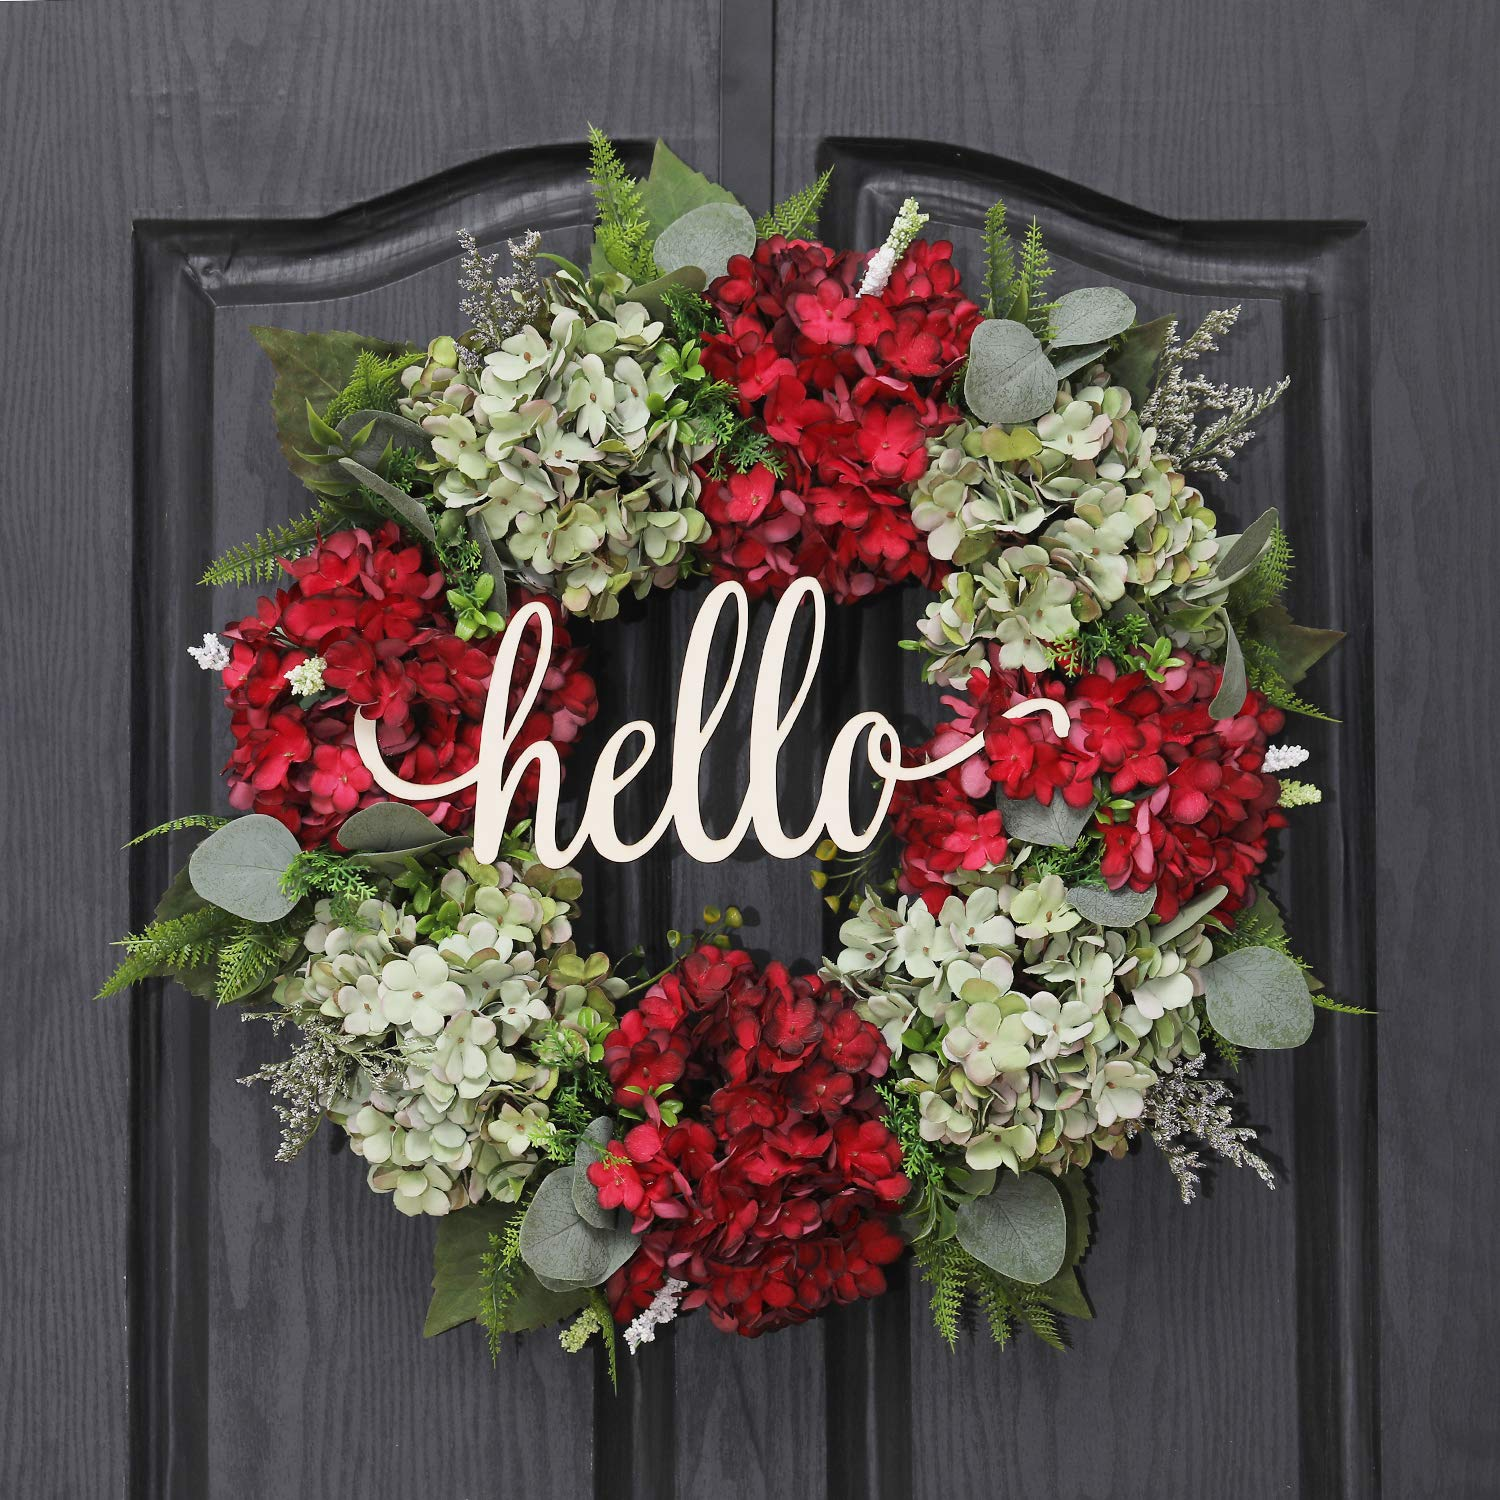 QUNWREATH Handmade Floral 18 inch Green Red Hydrangea Series Wreath,Gifts Package,Summer Wreath for Front Door,Rustic Wreath,Farmhouse Grapevine Wreath,Light up Wreath,Everyday Hello Wreath,QUNW52